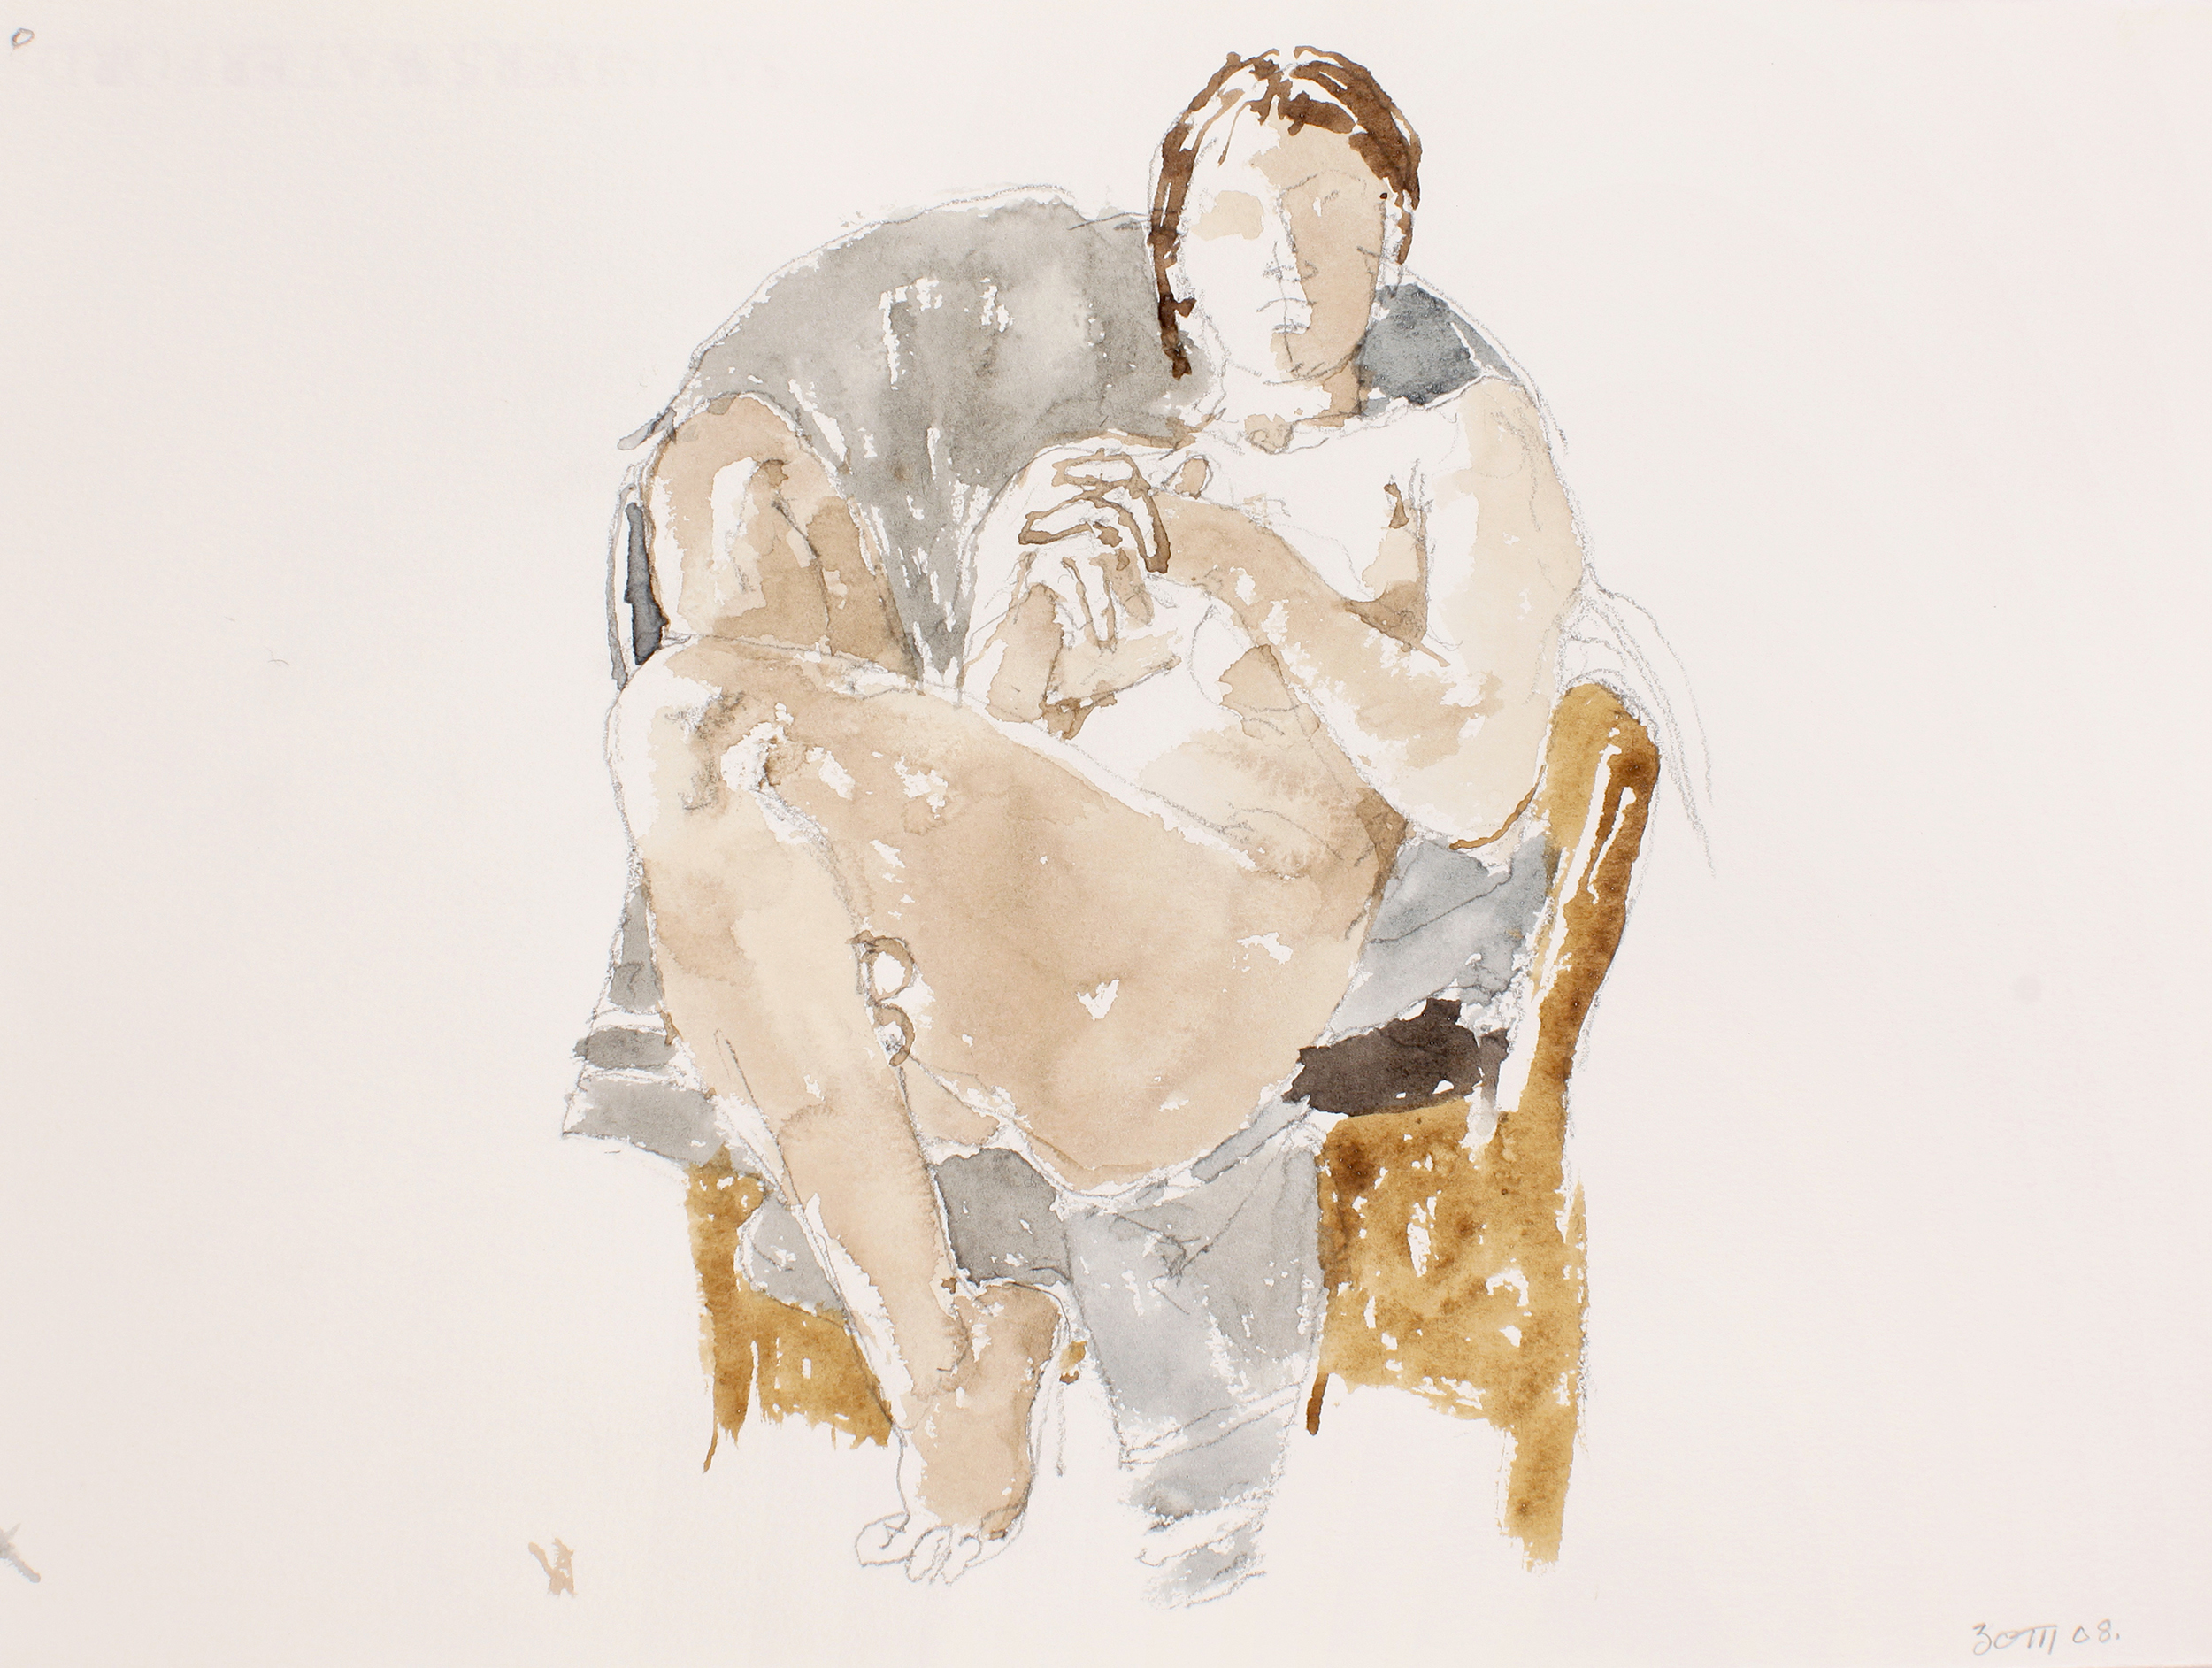 2008_Nude_Seated_Sideways_in_Rattan_Chair_with_Cloth_watercolour_and_pencil_on_paper_11x15in_WPF557.jpg